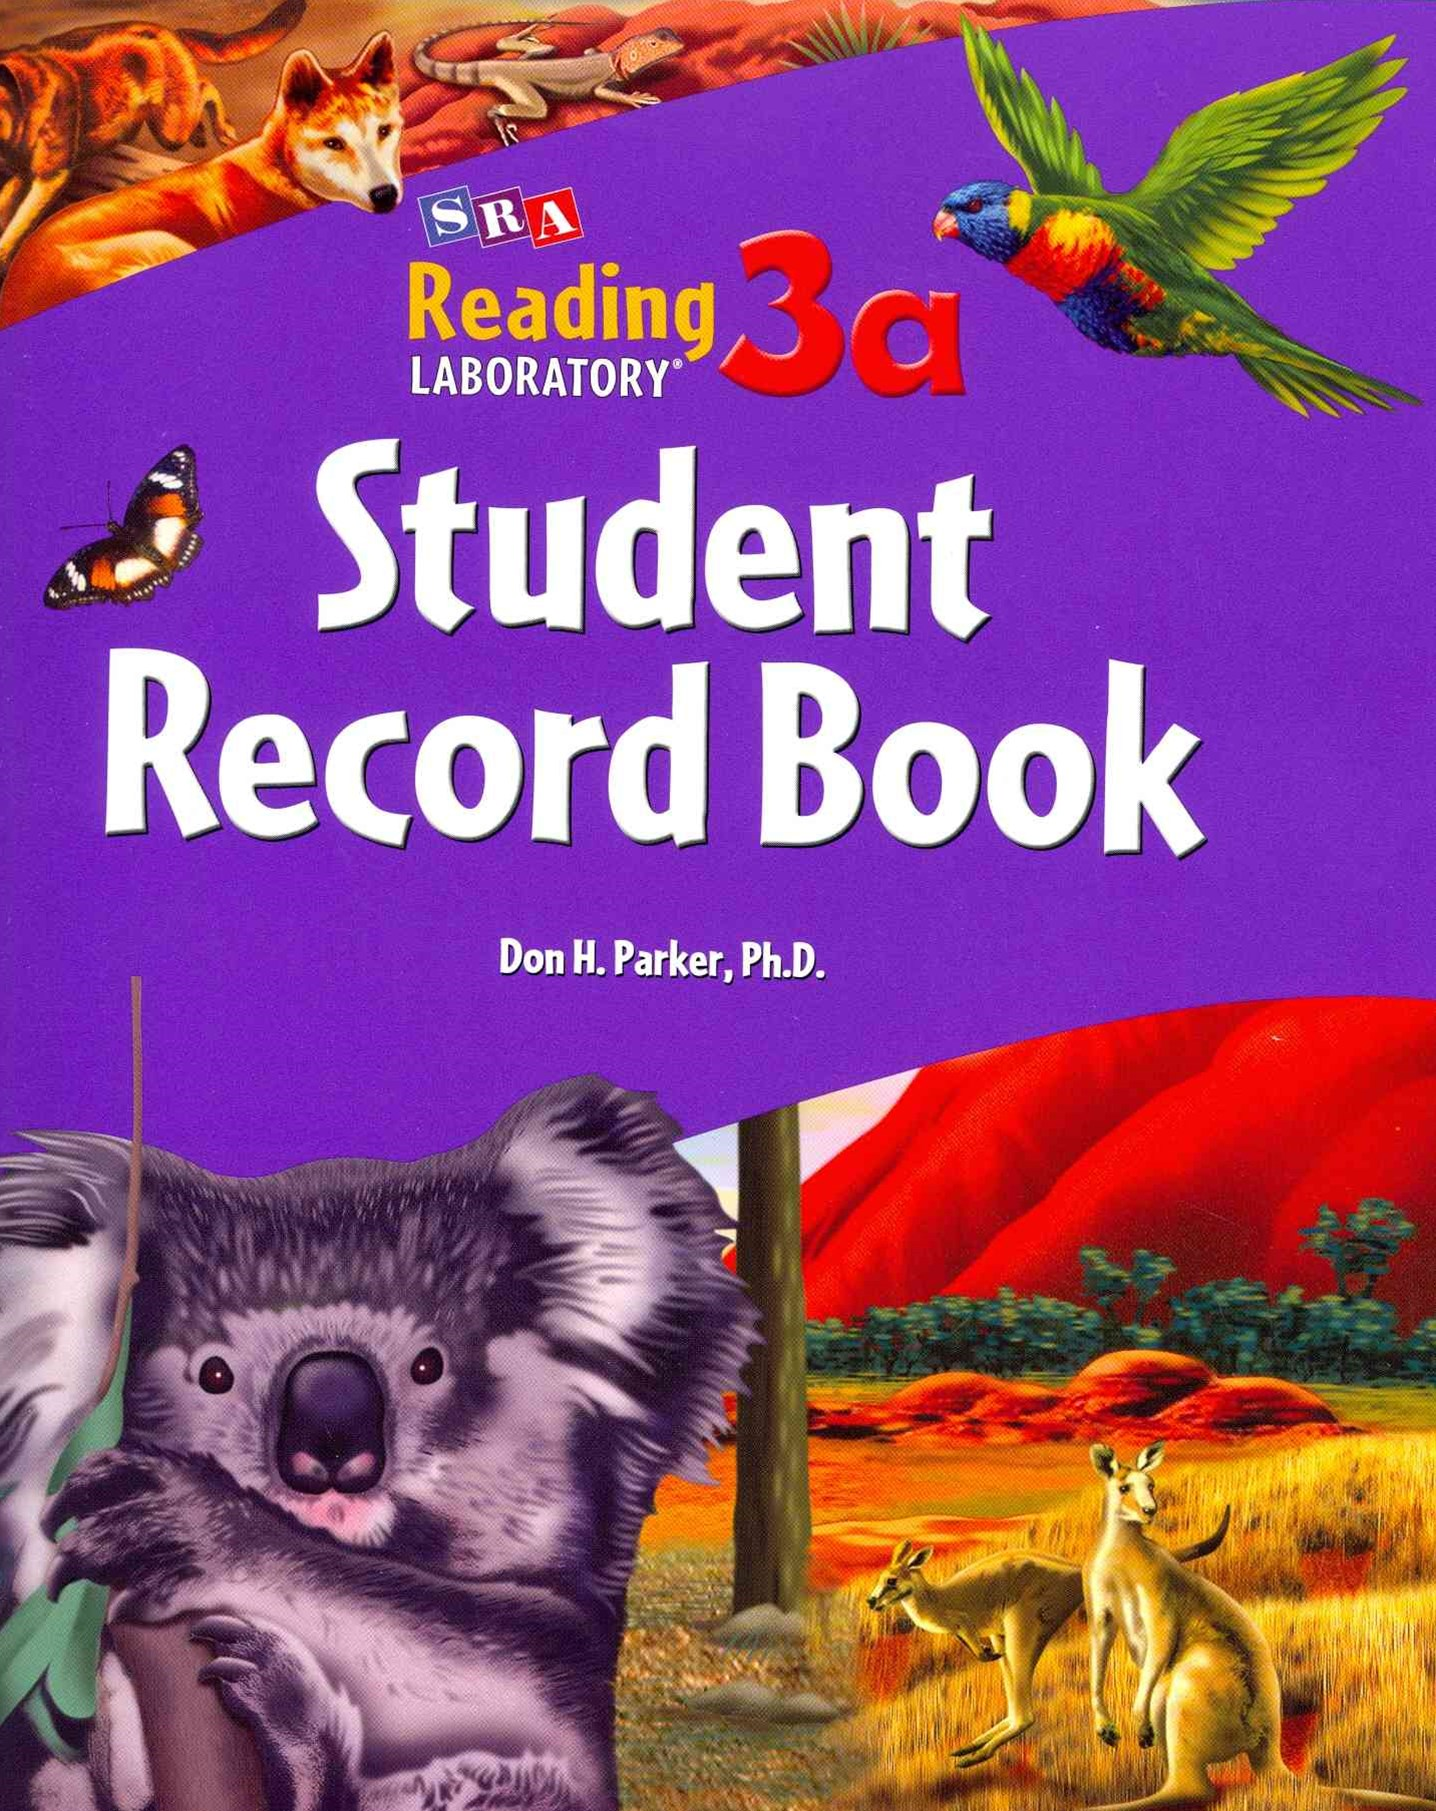 Student Record Books - Levels 3.5 - 11.0